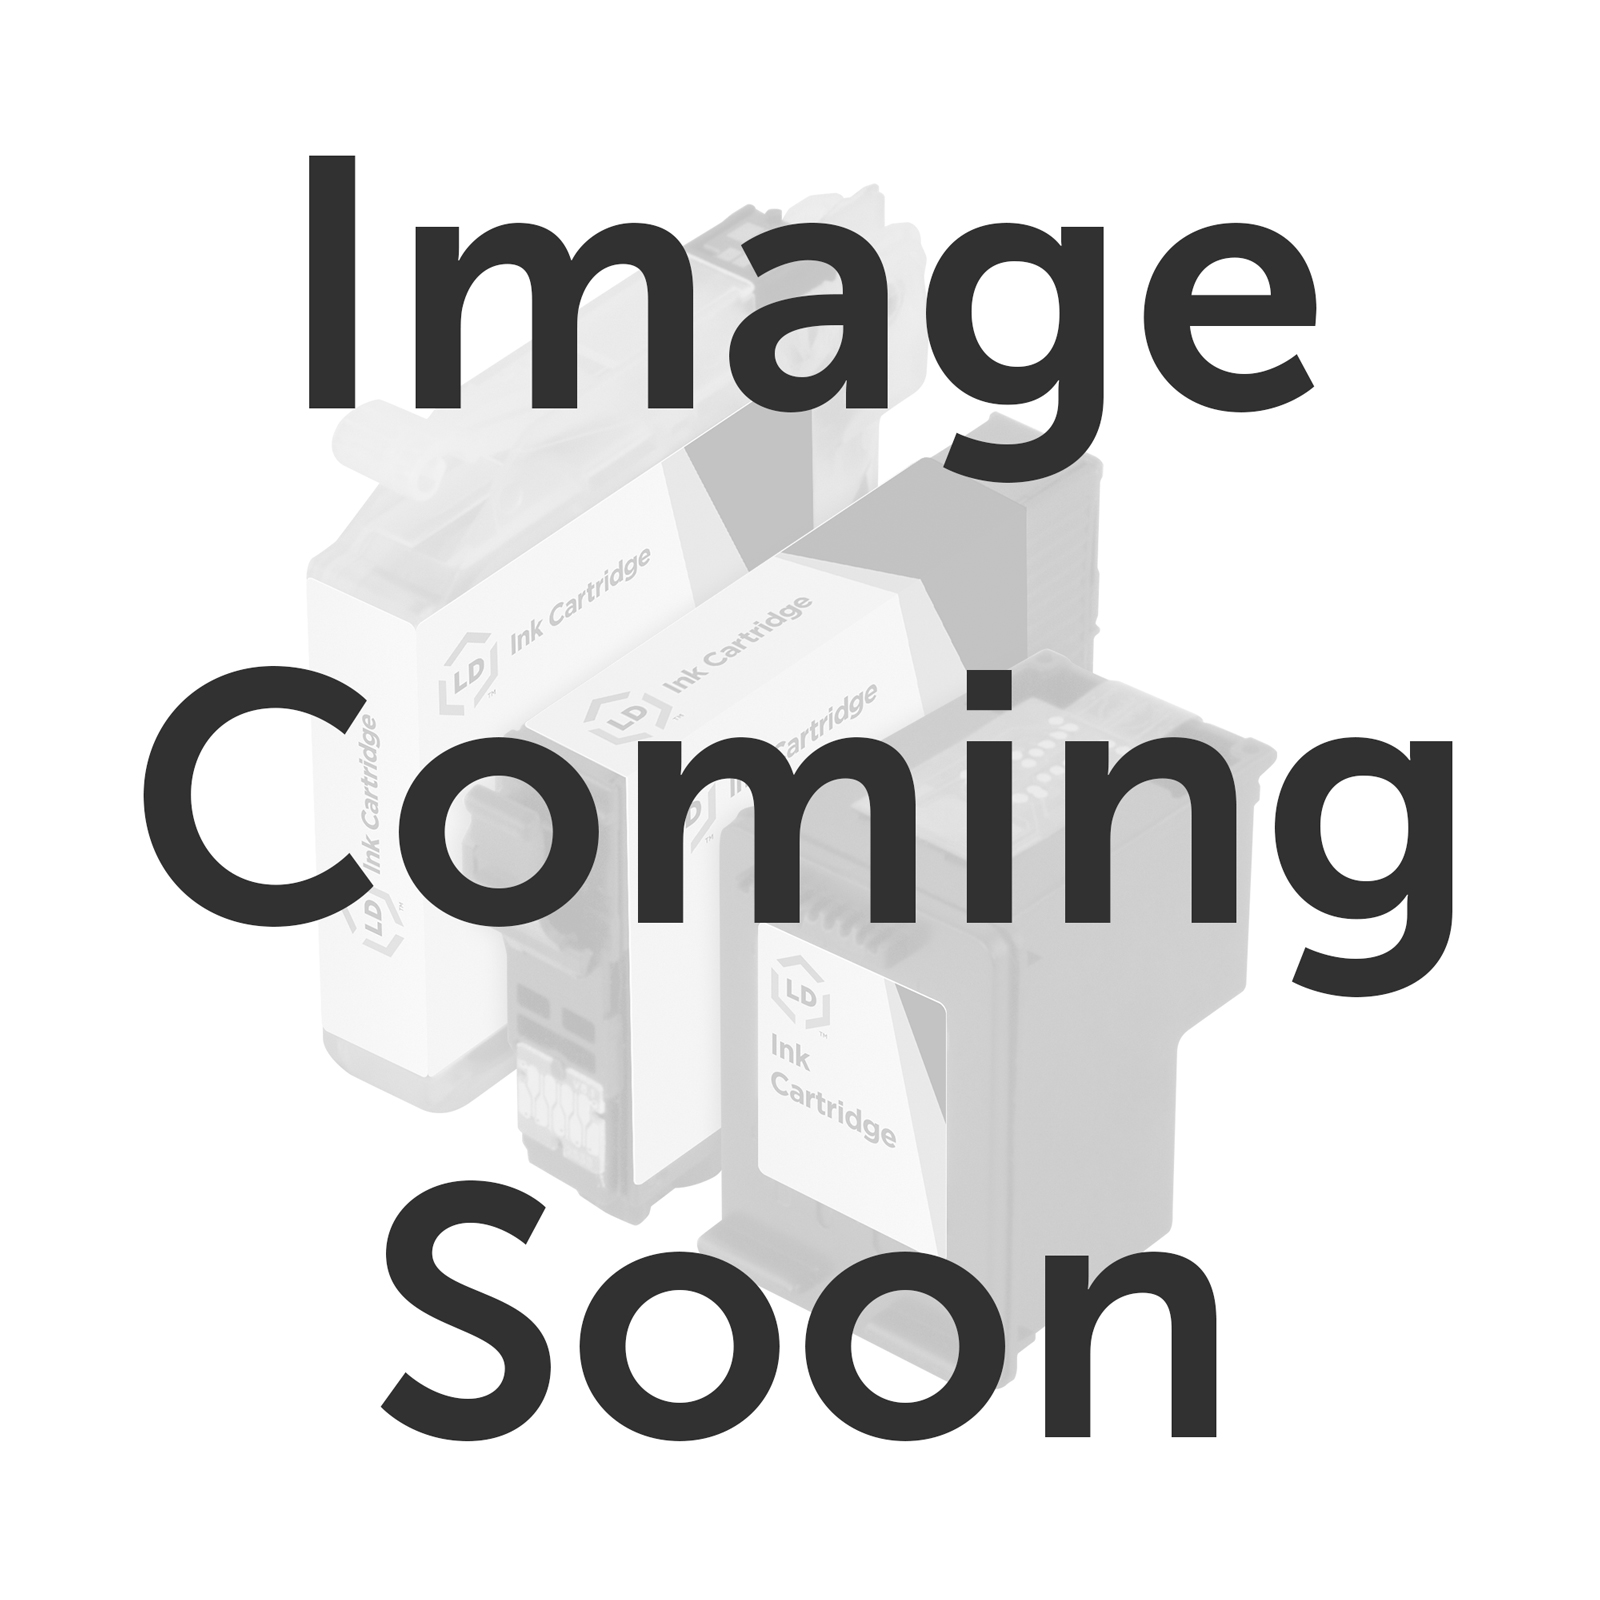 LD Inkjet Refill Kit for Canon CL31 / CL41 / CL51 Color